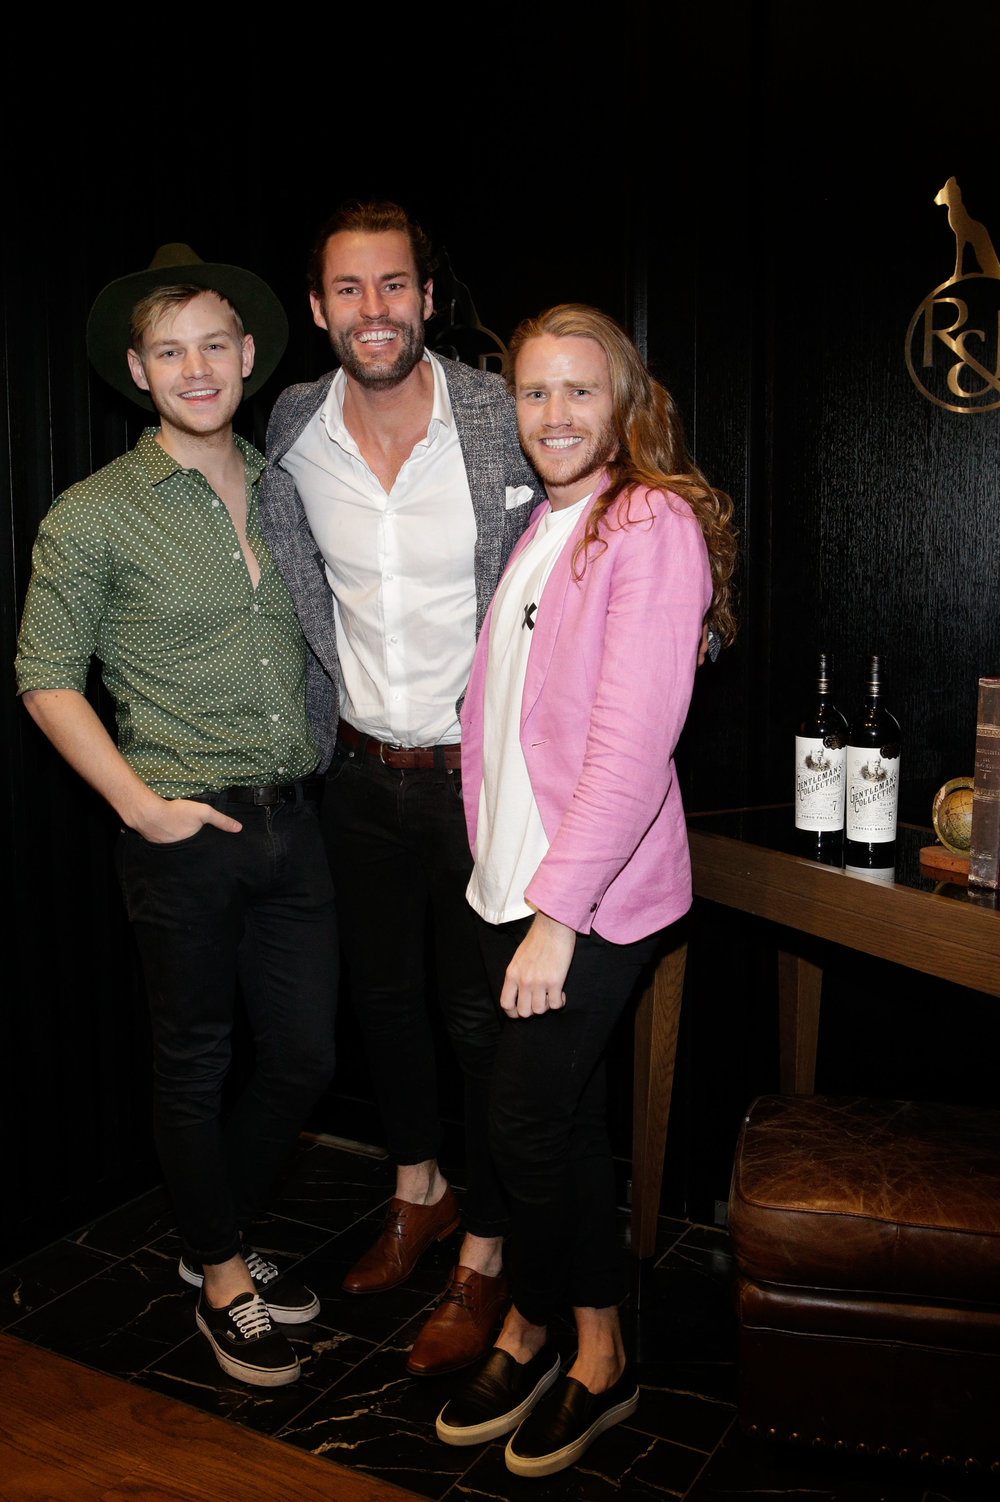 gentlemans-collection-series-2-2016-joel-cresey-guests.jpg